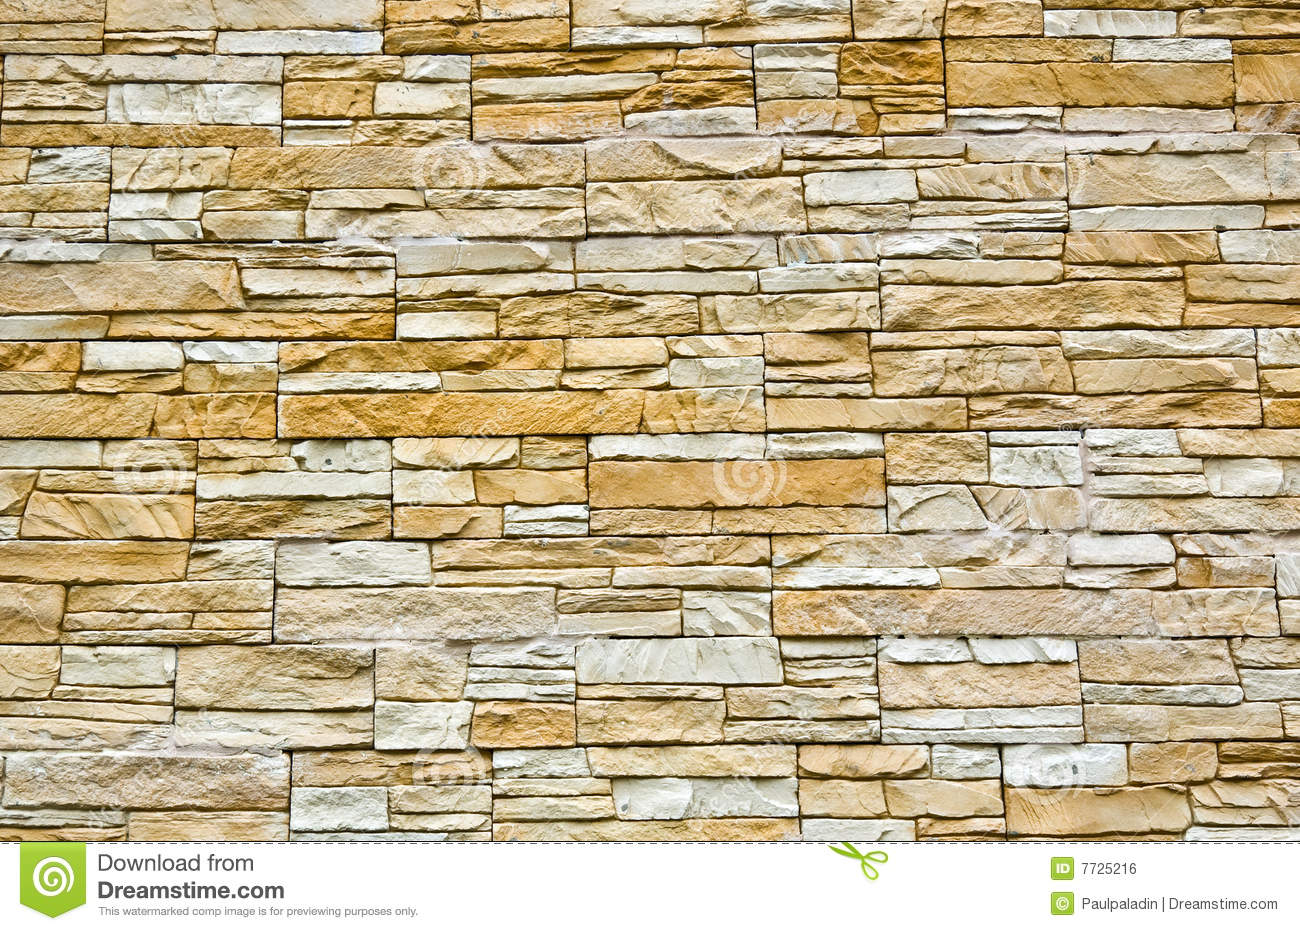 Stone wall texture stock photo. Image of surface, design - 7725216